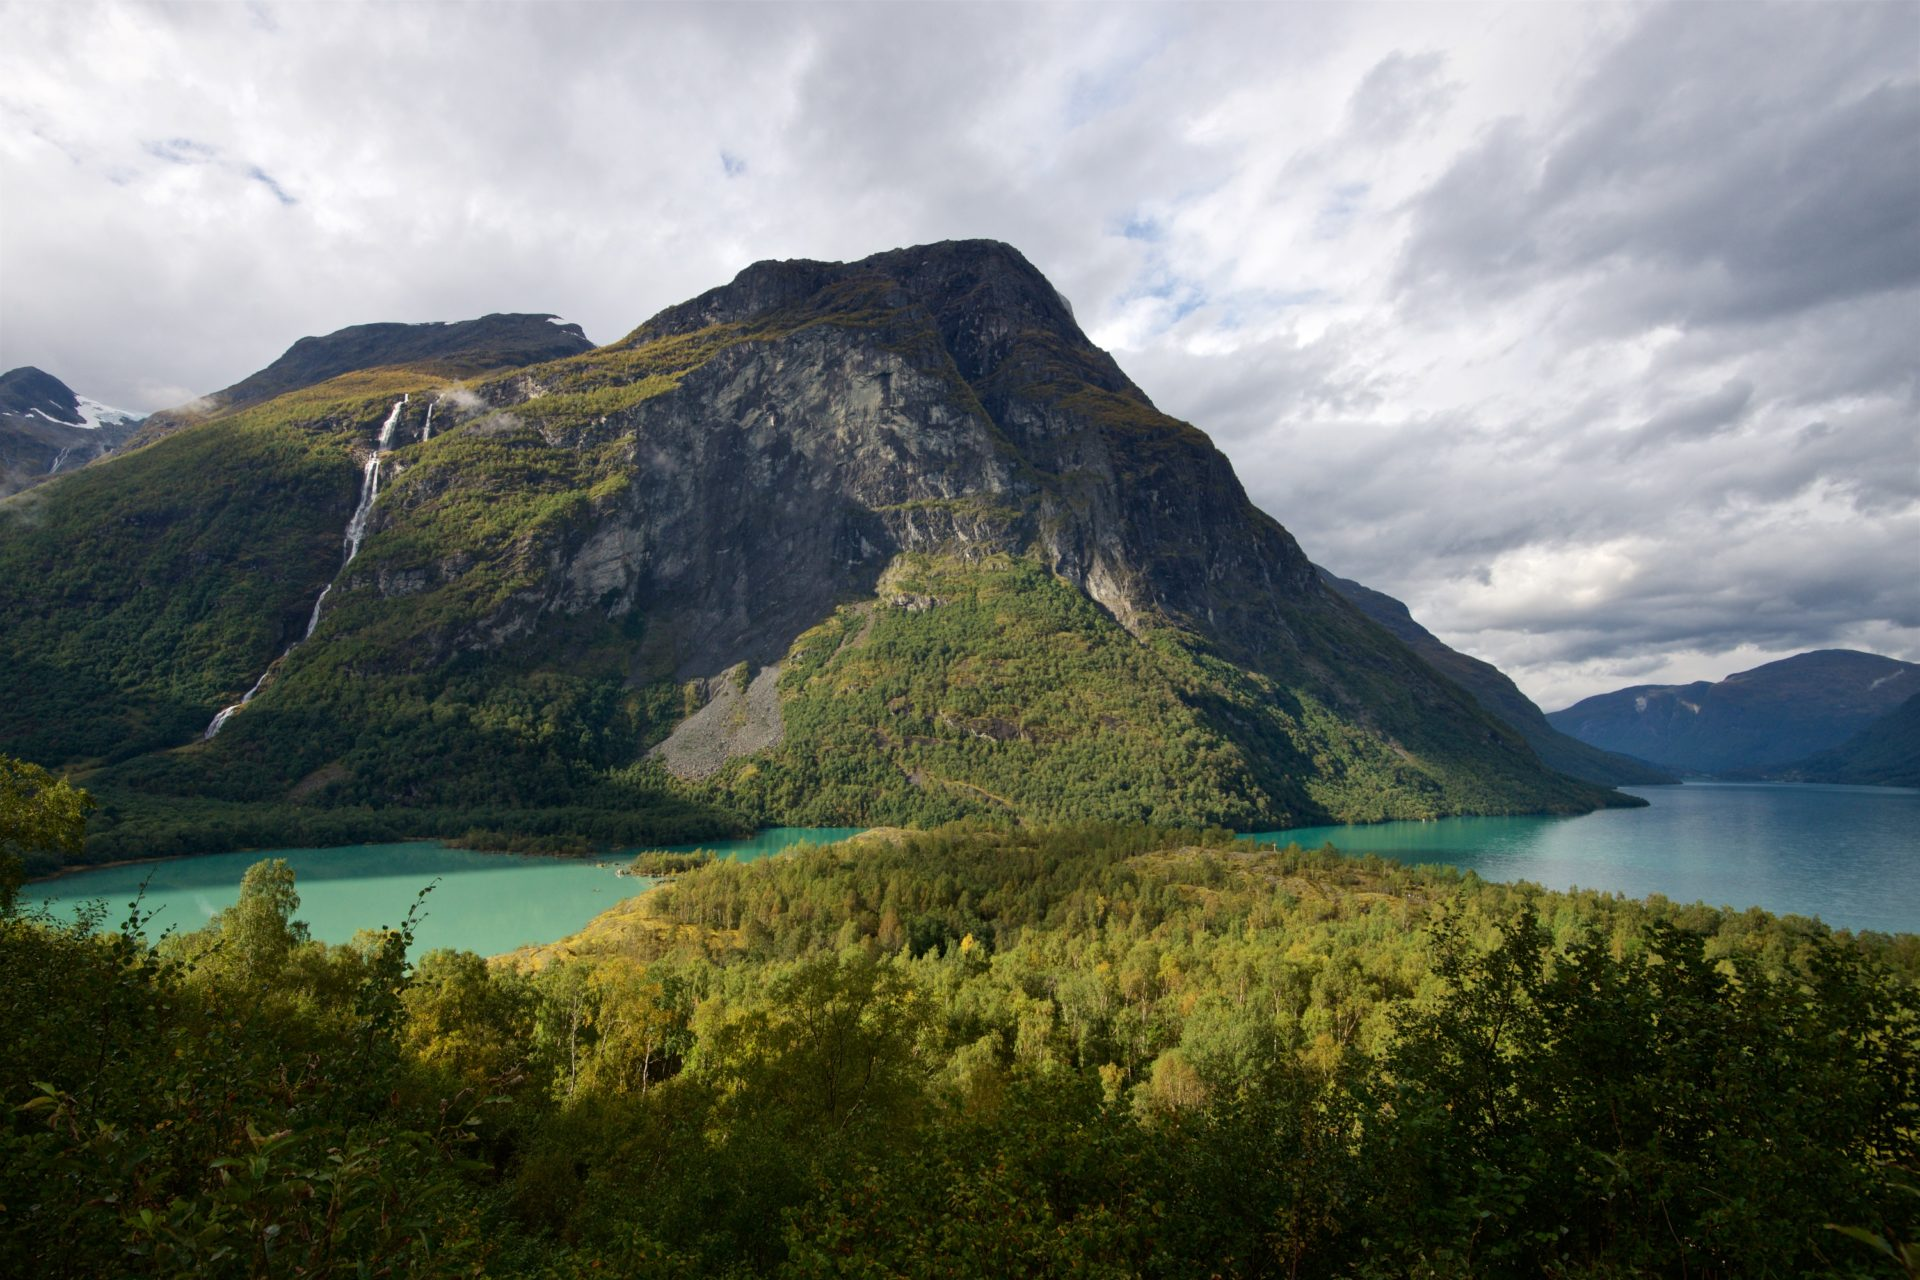 Ramnfjellet and Lake Lovatnet. Photo taken in 2016.